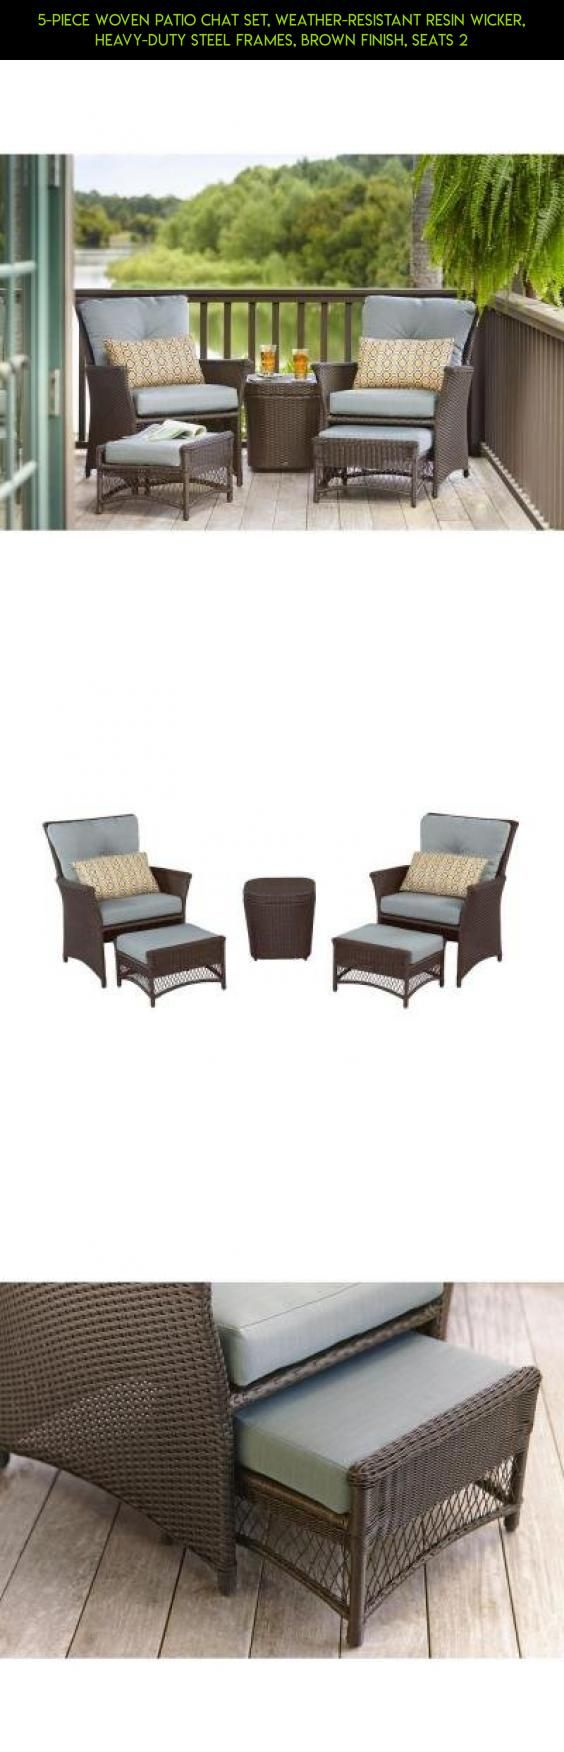 5-Piece Woven Patio Chat Set, Weather-Resistant Resin Wicker, Heavy-Duty Steel Frames, Brown Finish, Seats 2 #ottoman #parts #camera #technology #racing #drone #fpv #products #patio #kit #furniture #shopping #plans #gadgets #tech